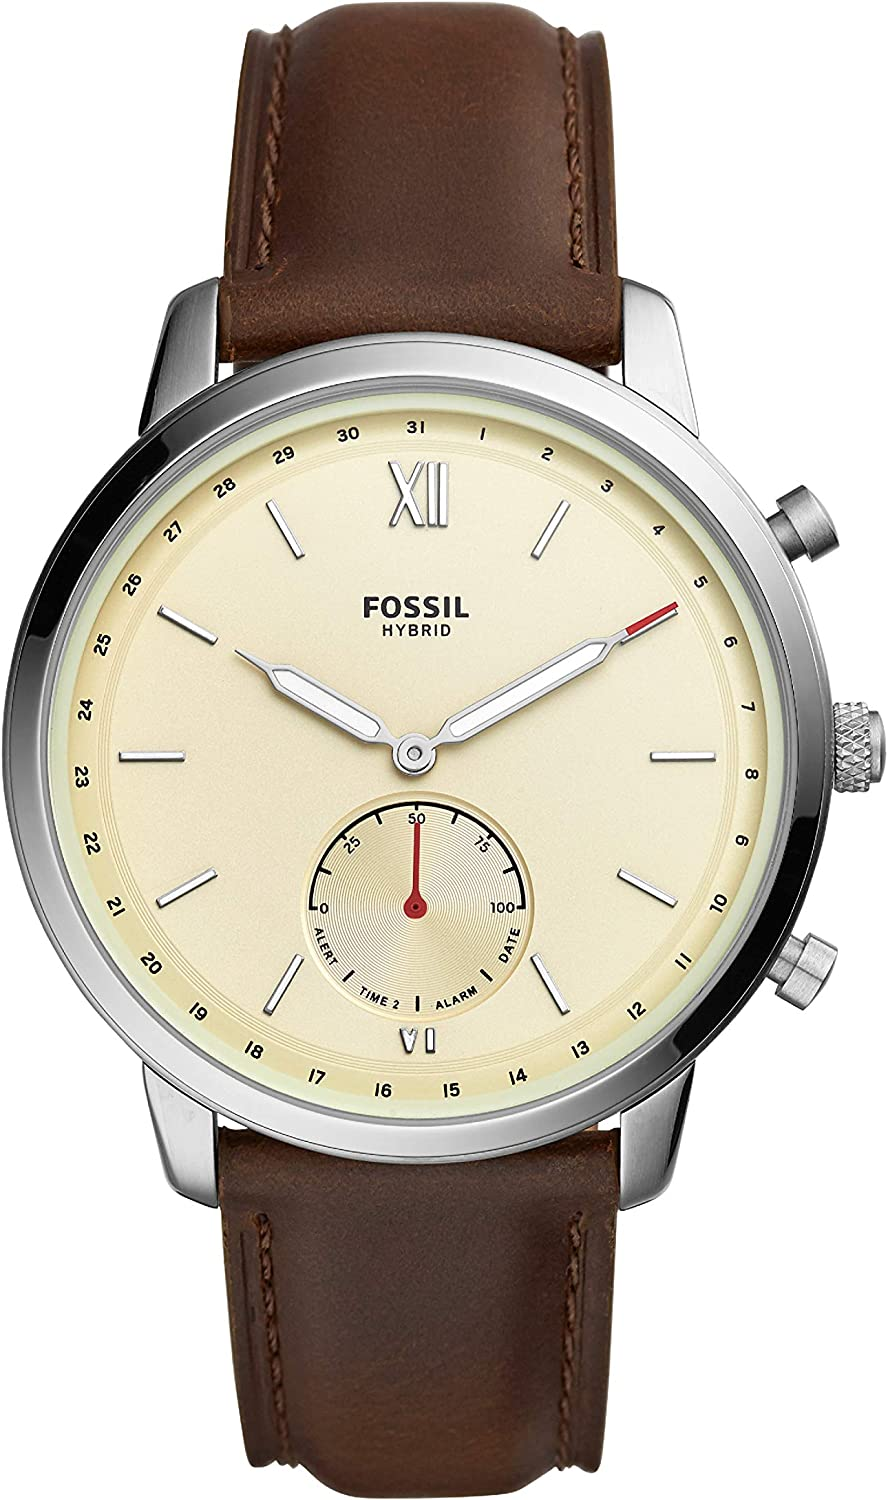 Fossil Men s Neutra Stainless Steel Hybrid Smartwatch with Activity Tracking and Smartphone Notifications